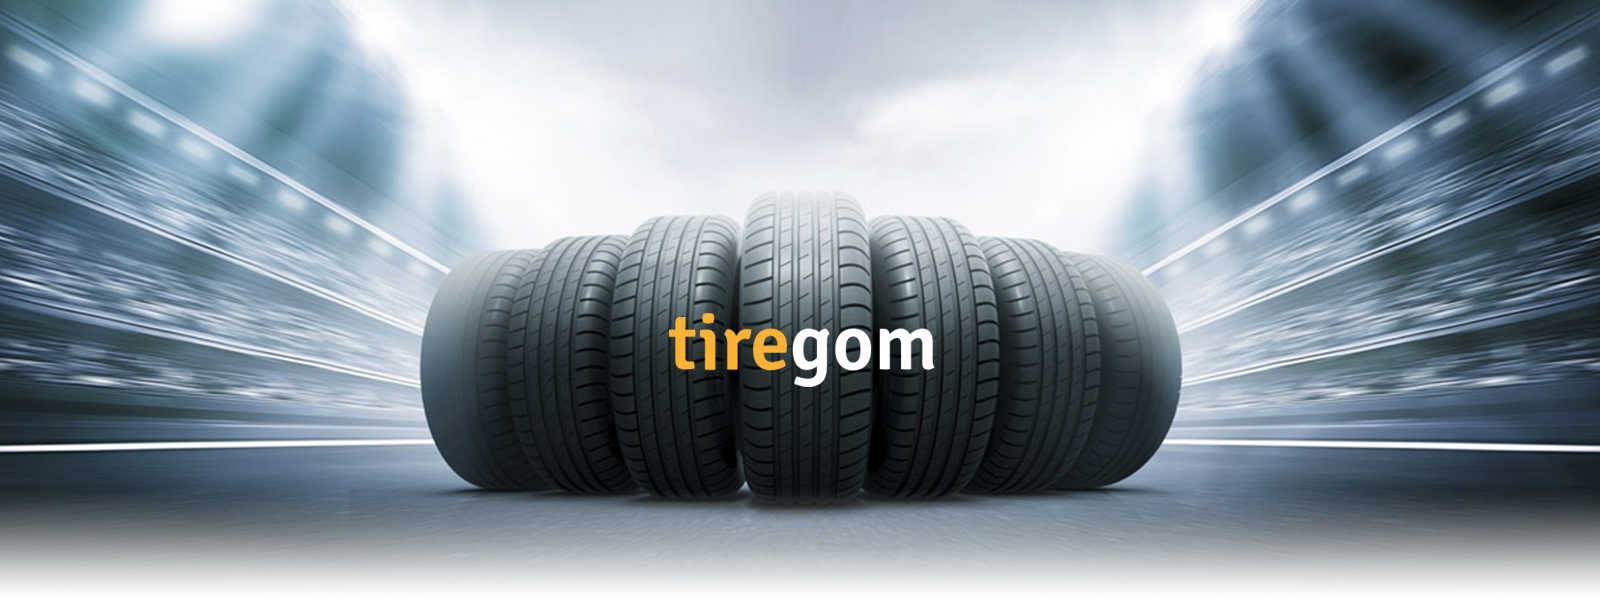 Tiregom.fi : rengasvertailu